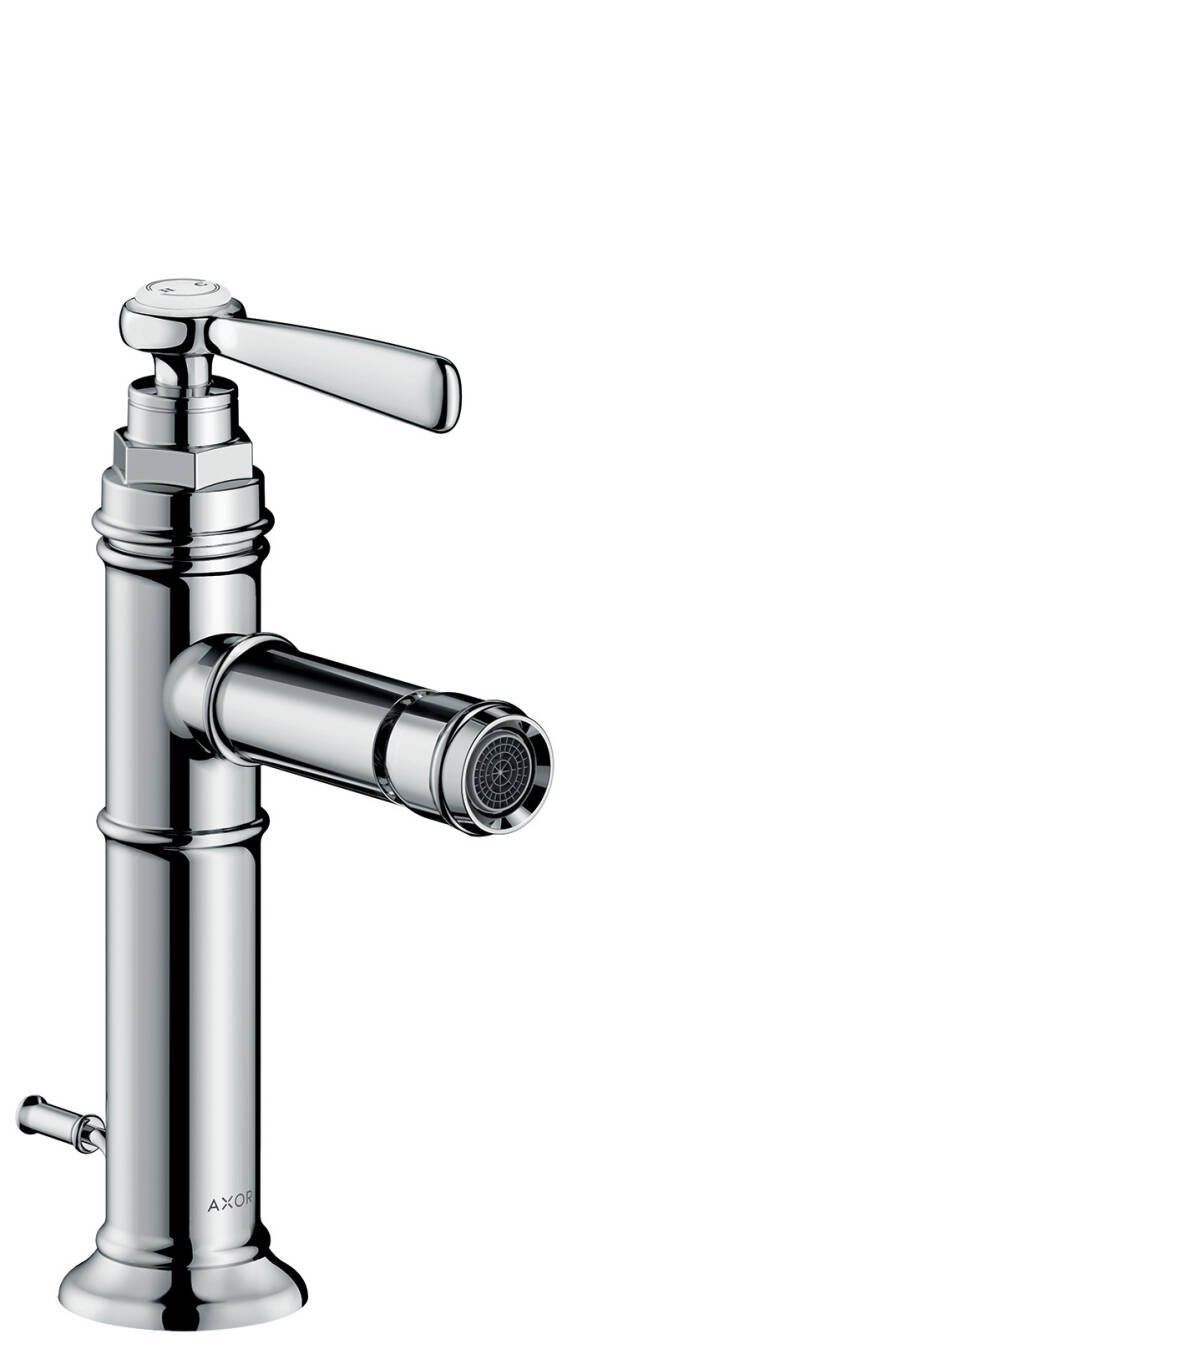 Single lever bidet mixer with lever handle and pop-up waste set, Stainless Steel Optic, 16526800